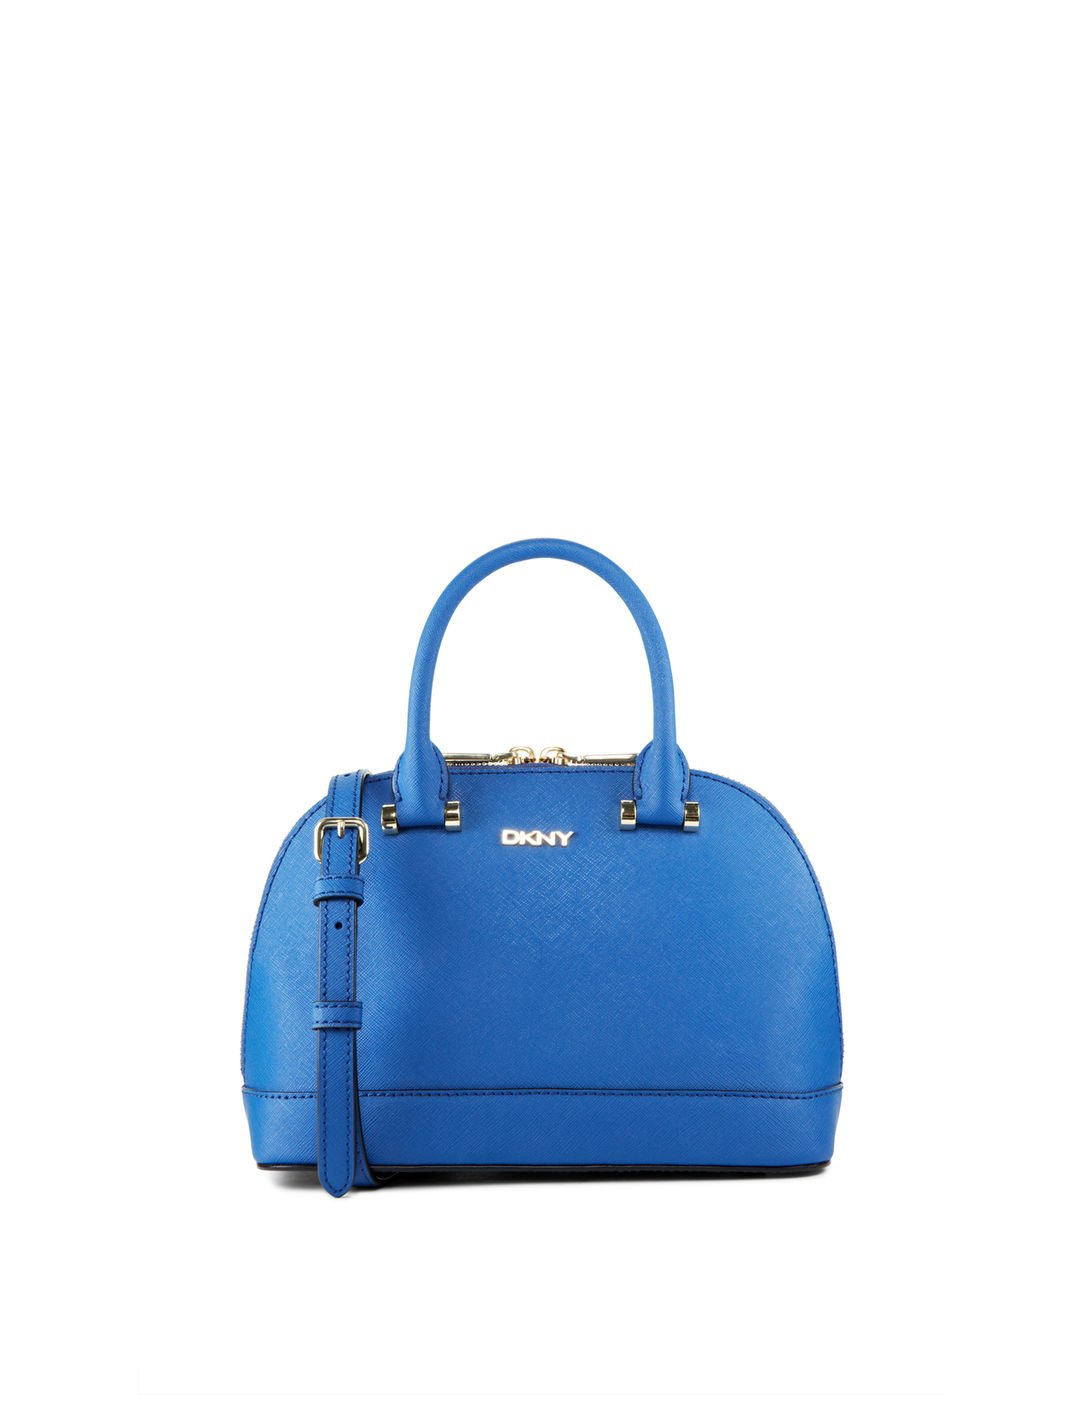 Dkny Saffiano Leather Mini Top Handle Bag in Blue | Lyst